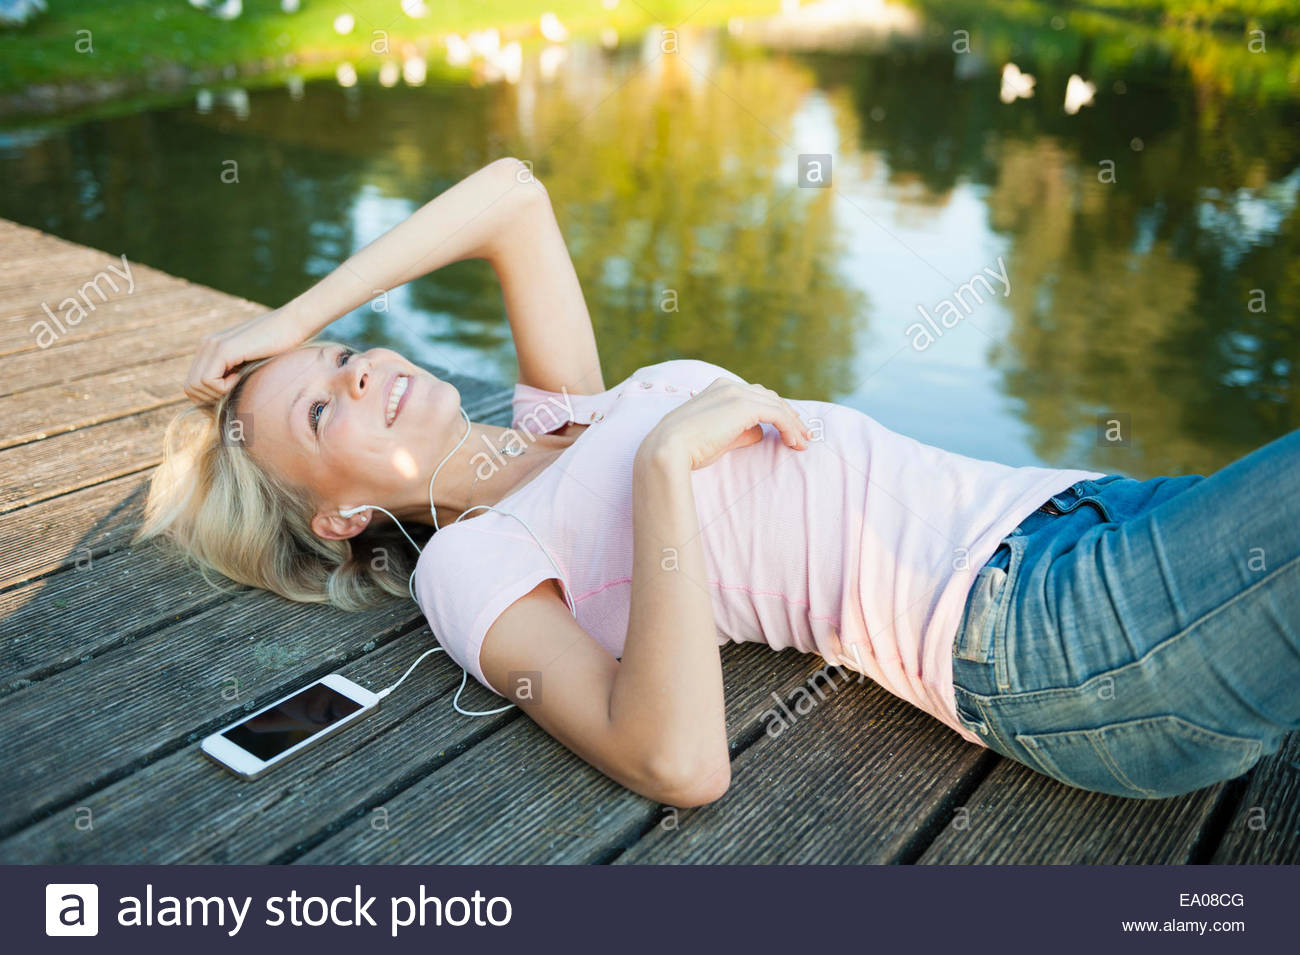 Young woman lying on pier with mp3 player - Stock Image